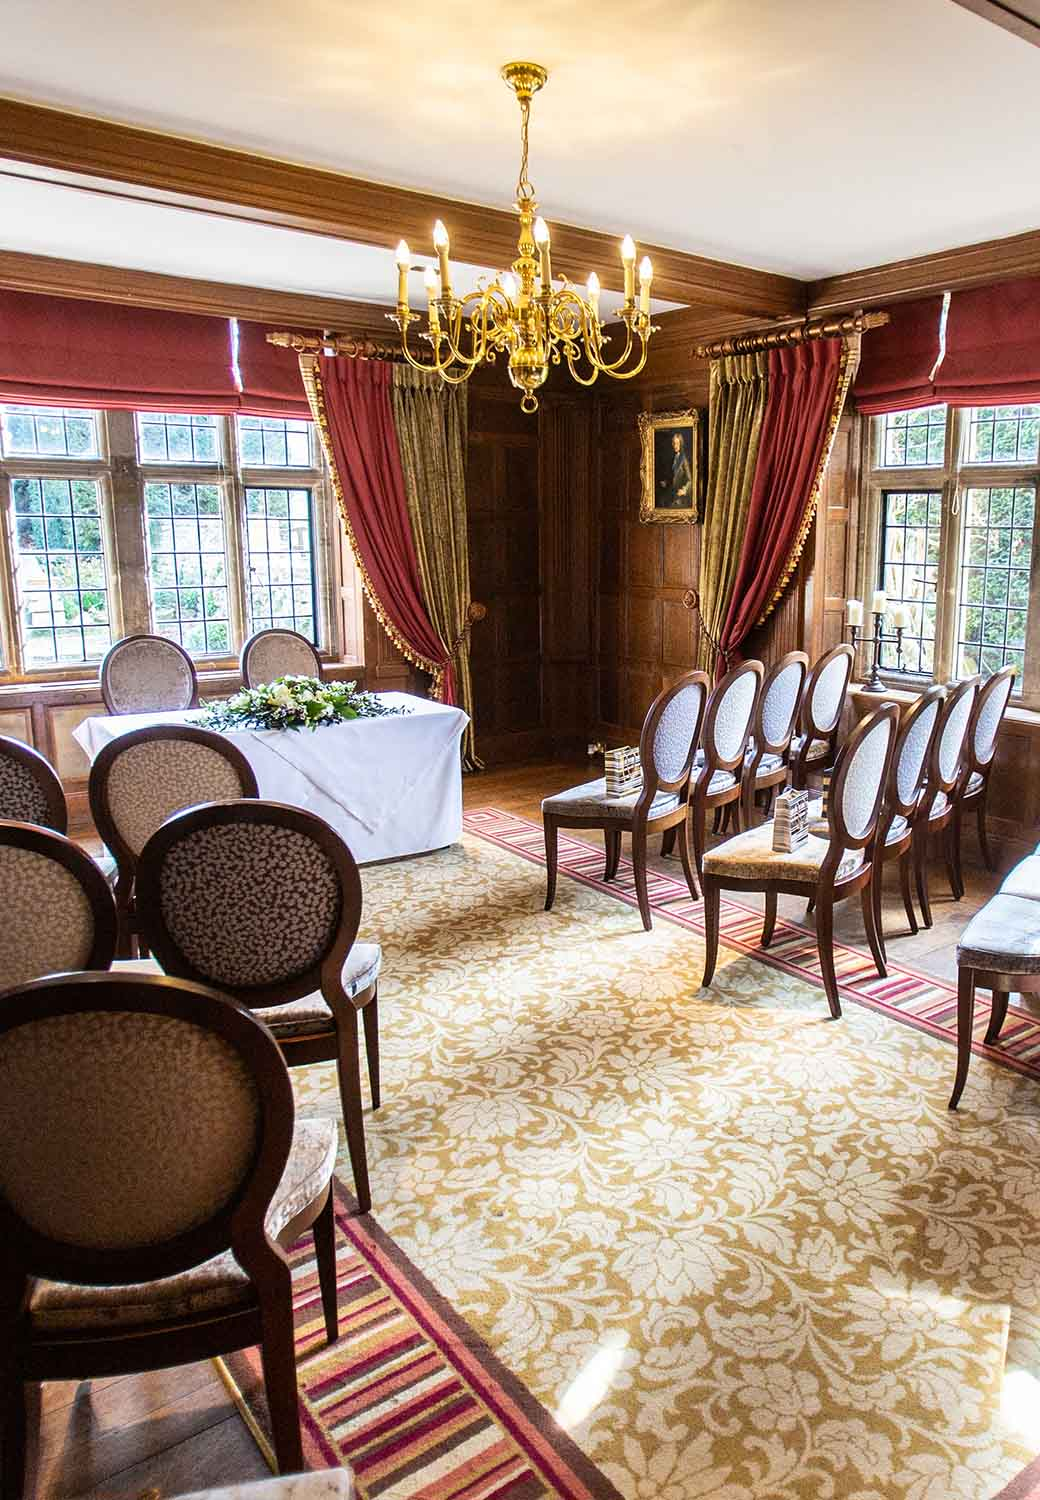 Ceremony Room at The Greenway Hotel and Spa Cheltenham